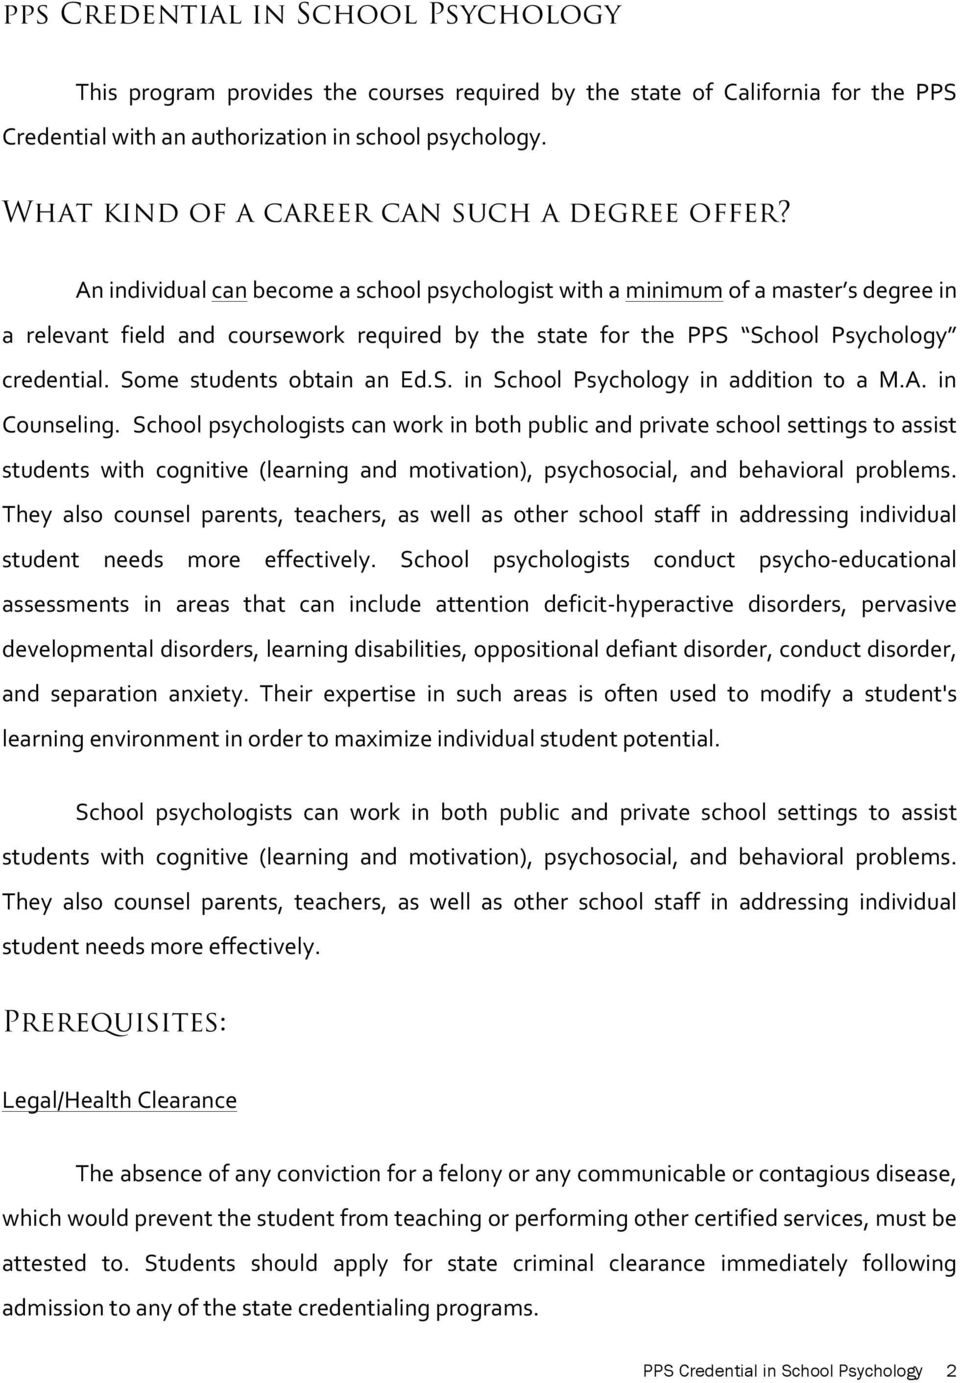 An individual can become a school psychologist with a minimum of a master s degree in a relevant field and coursework required by the state for the PPS School Psychology credential.